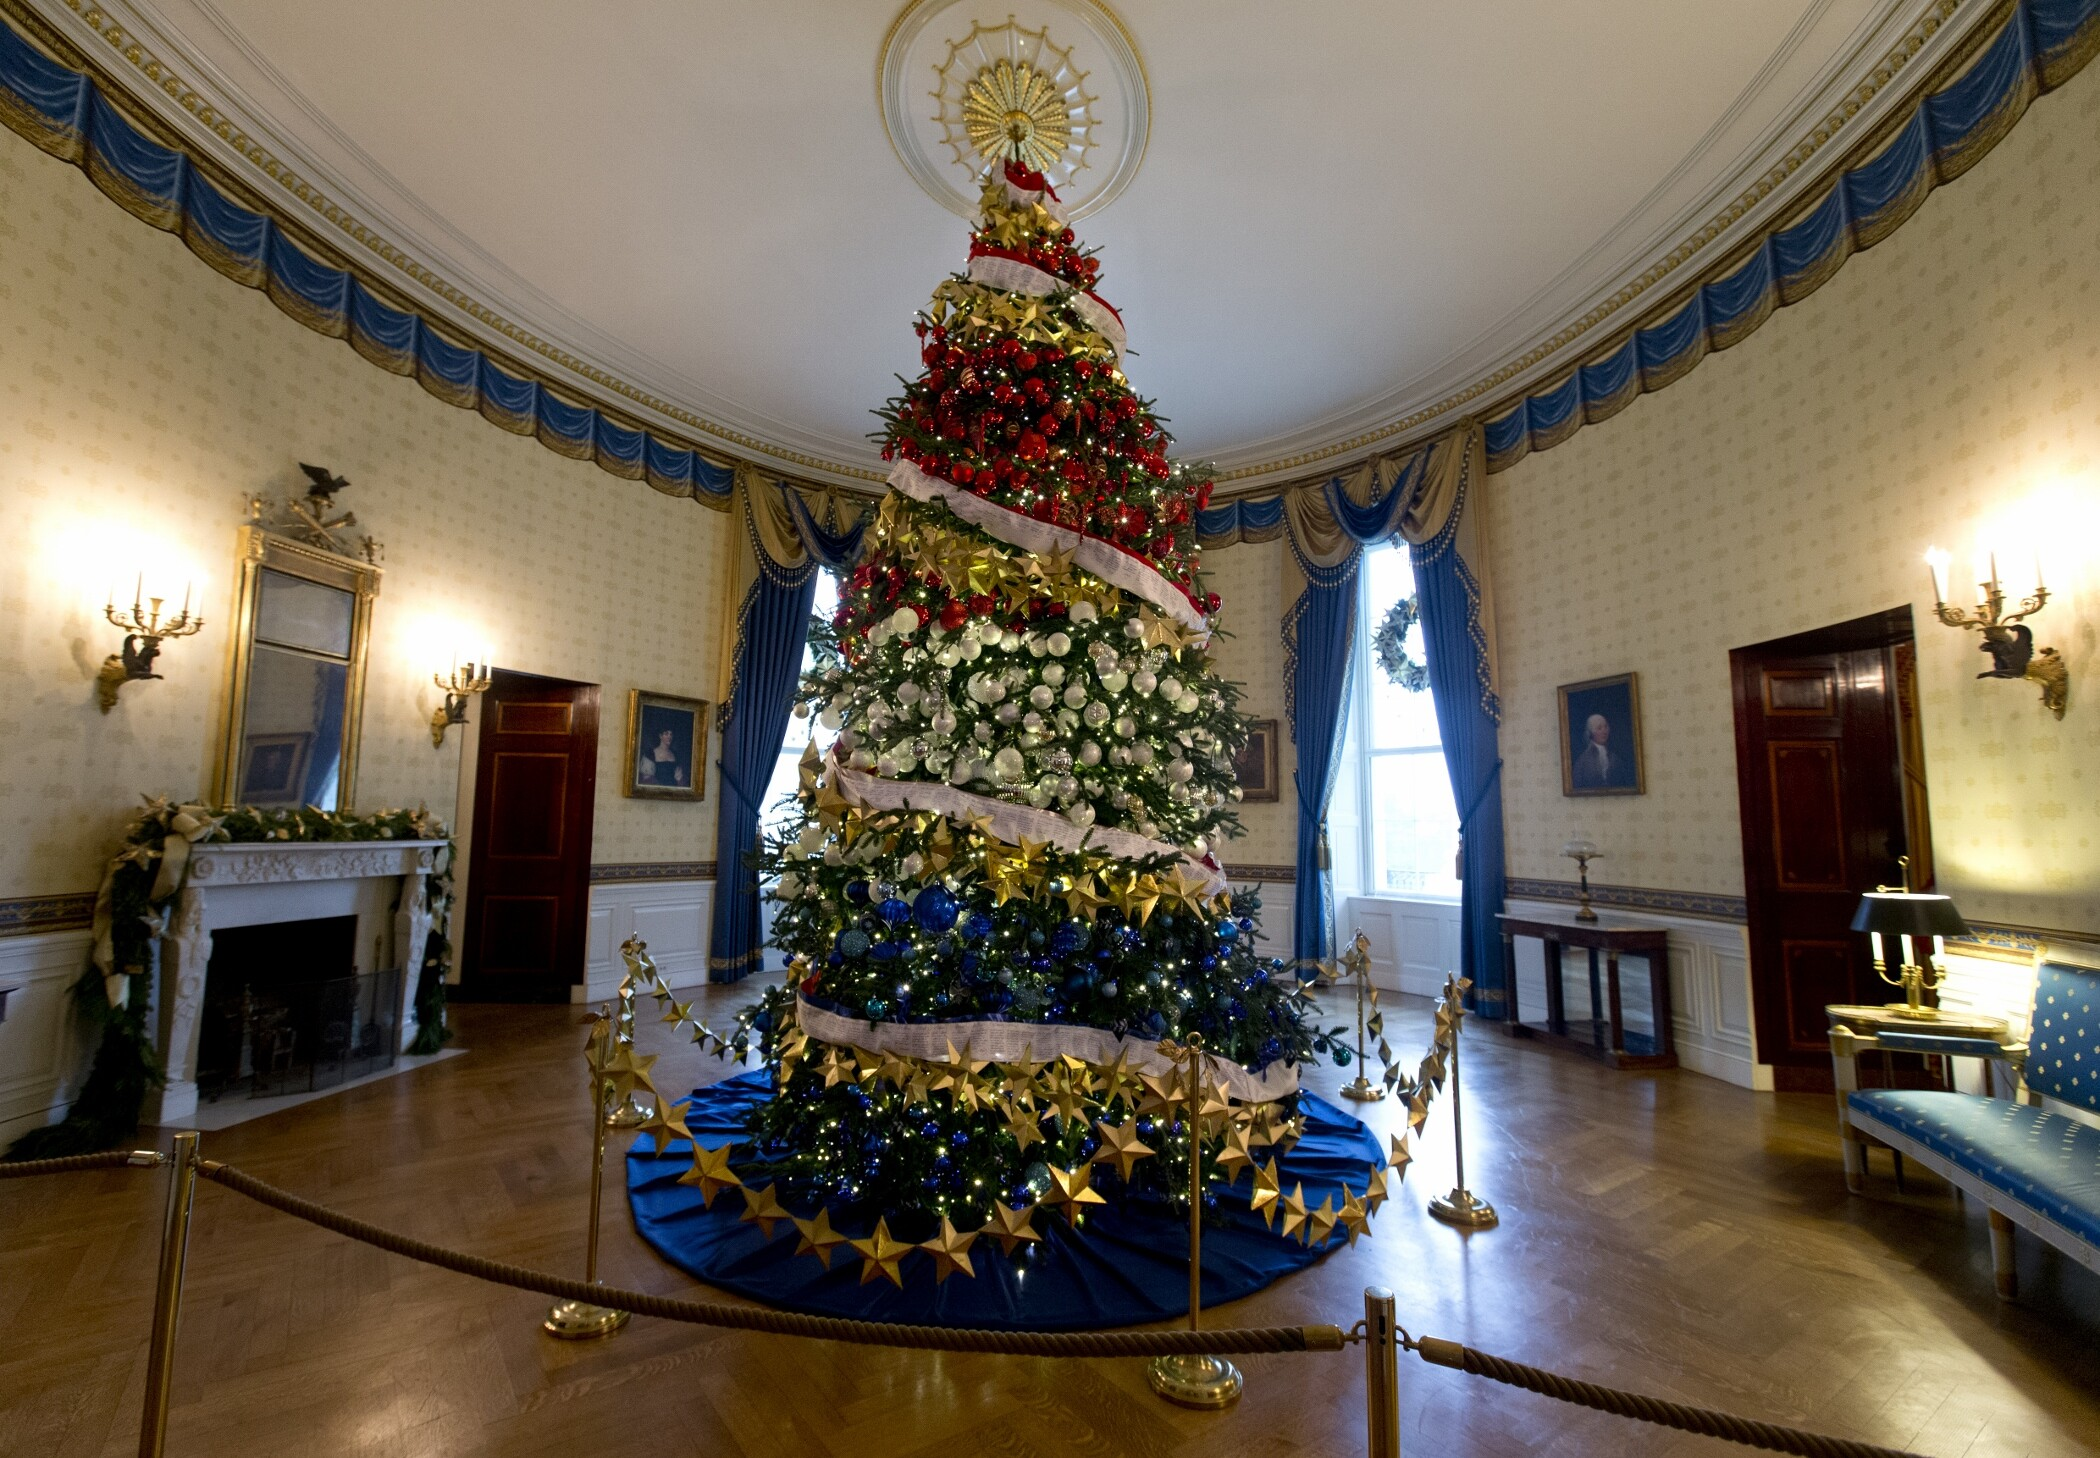 melania trump to accept white house christmas tree next week - Melania Trump Christmas Decorations